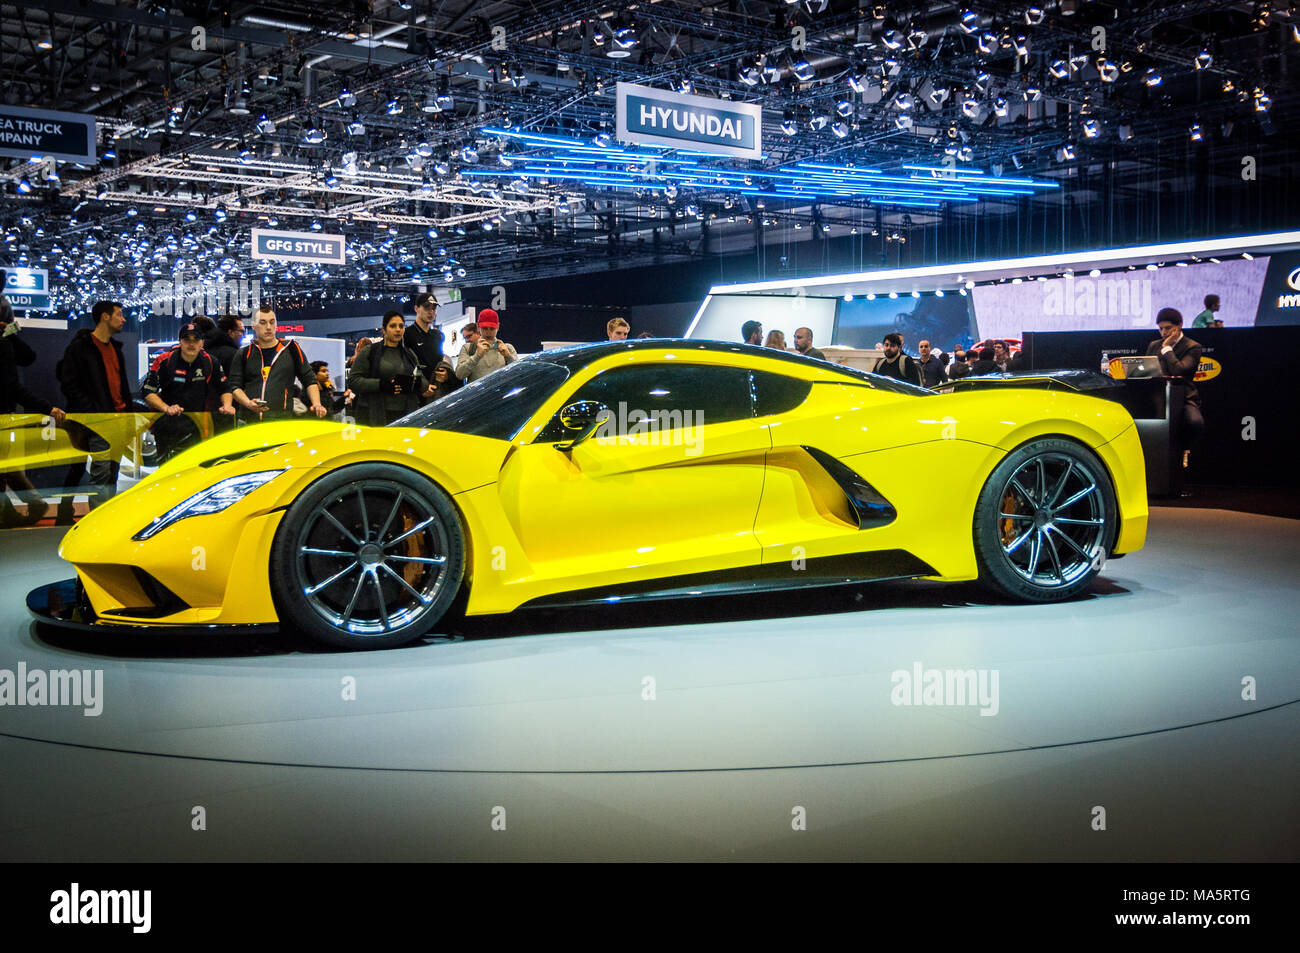 GENEVA, SWITZERLAND - MARCH 17, 2018: Hennessey Venom F5 Superfast sports car presented at the 88th Geneva International Motor Show. - Stock Image